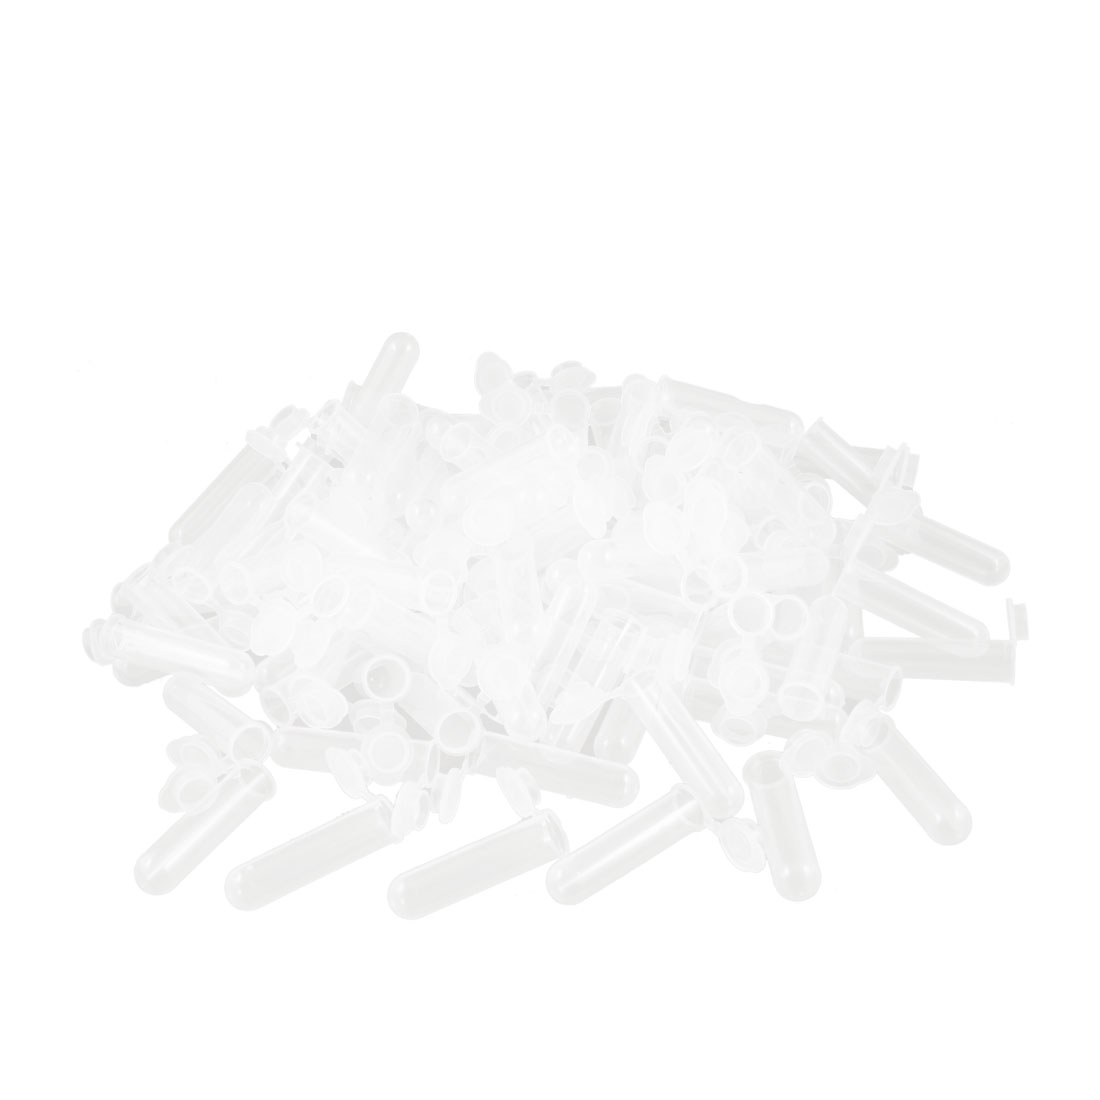 200 Pcs 7ml Round Bottom Centrifuge Tubes w Attached Caps Clear White